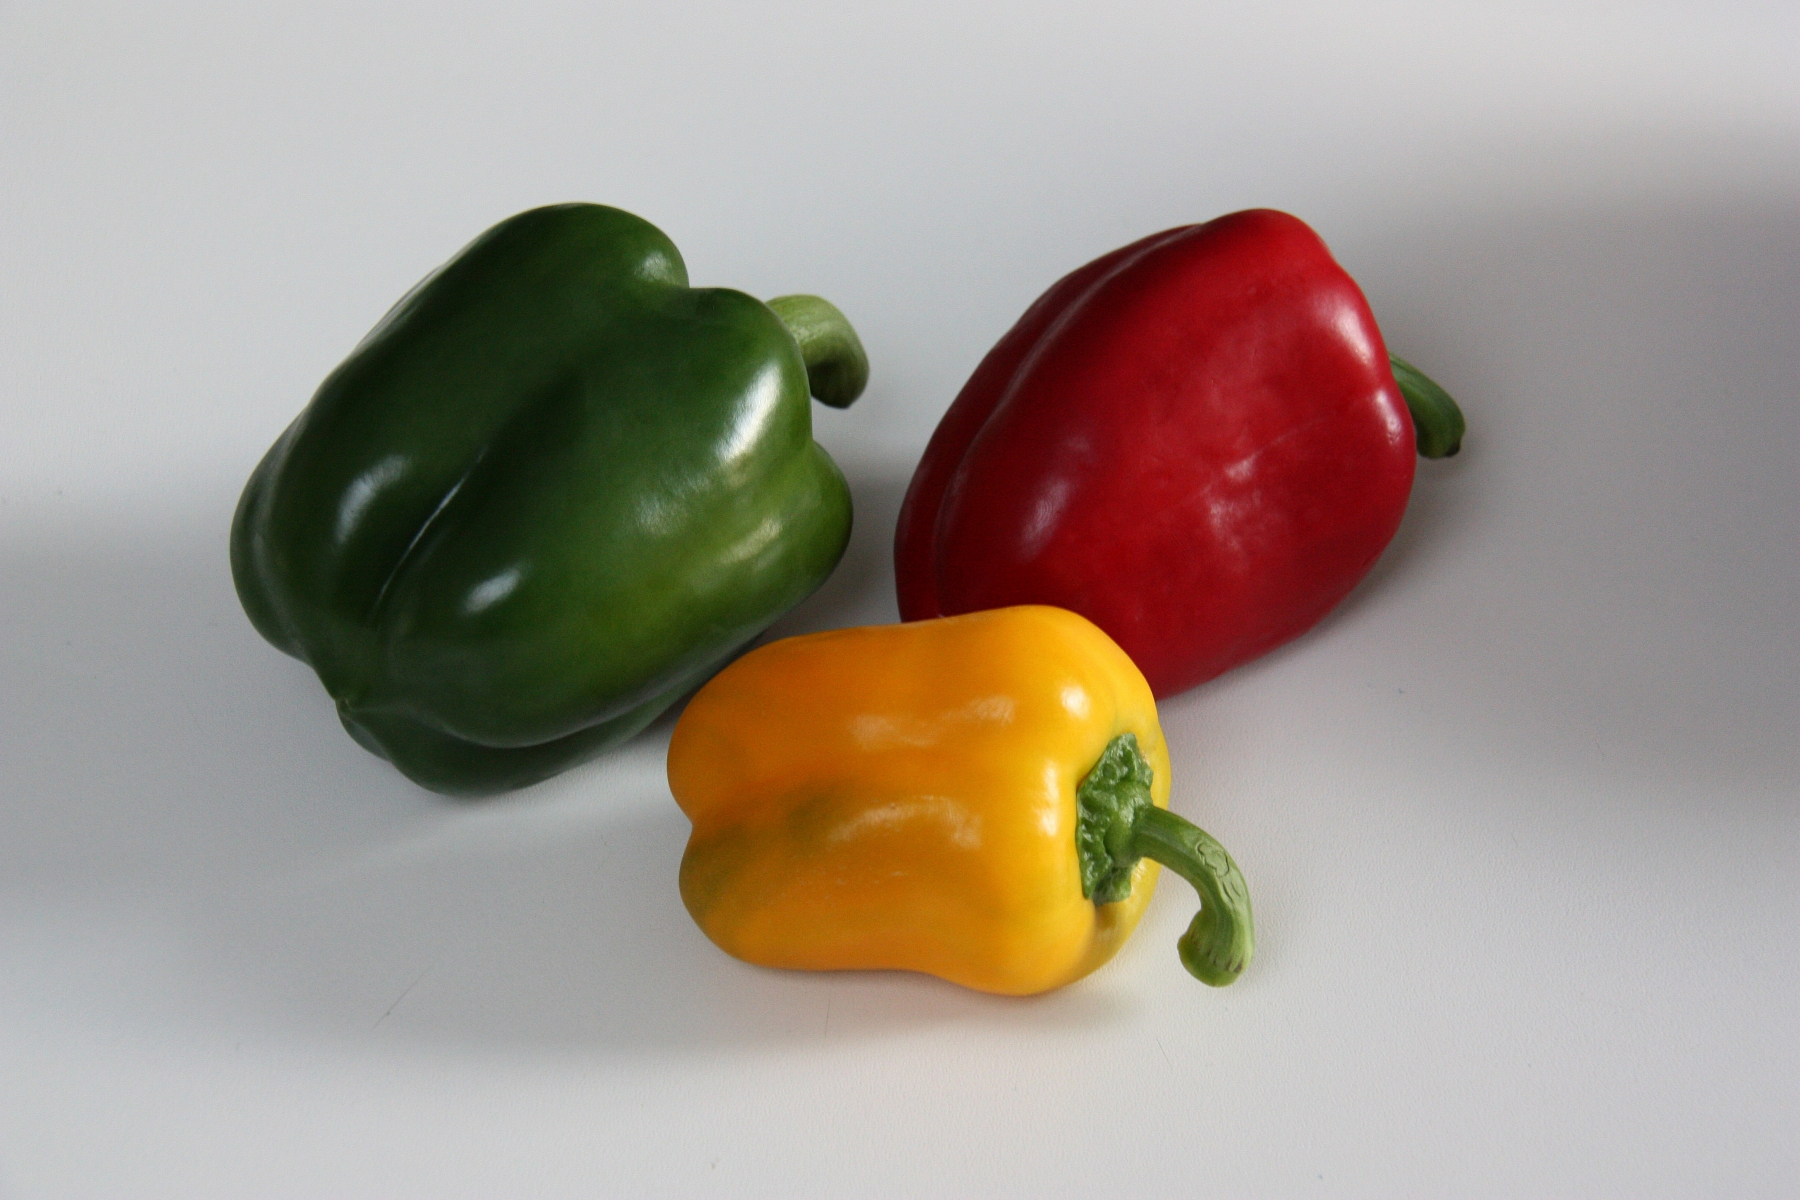 image of red bell pepper